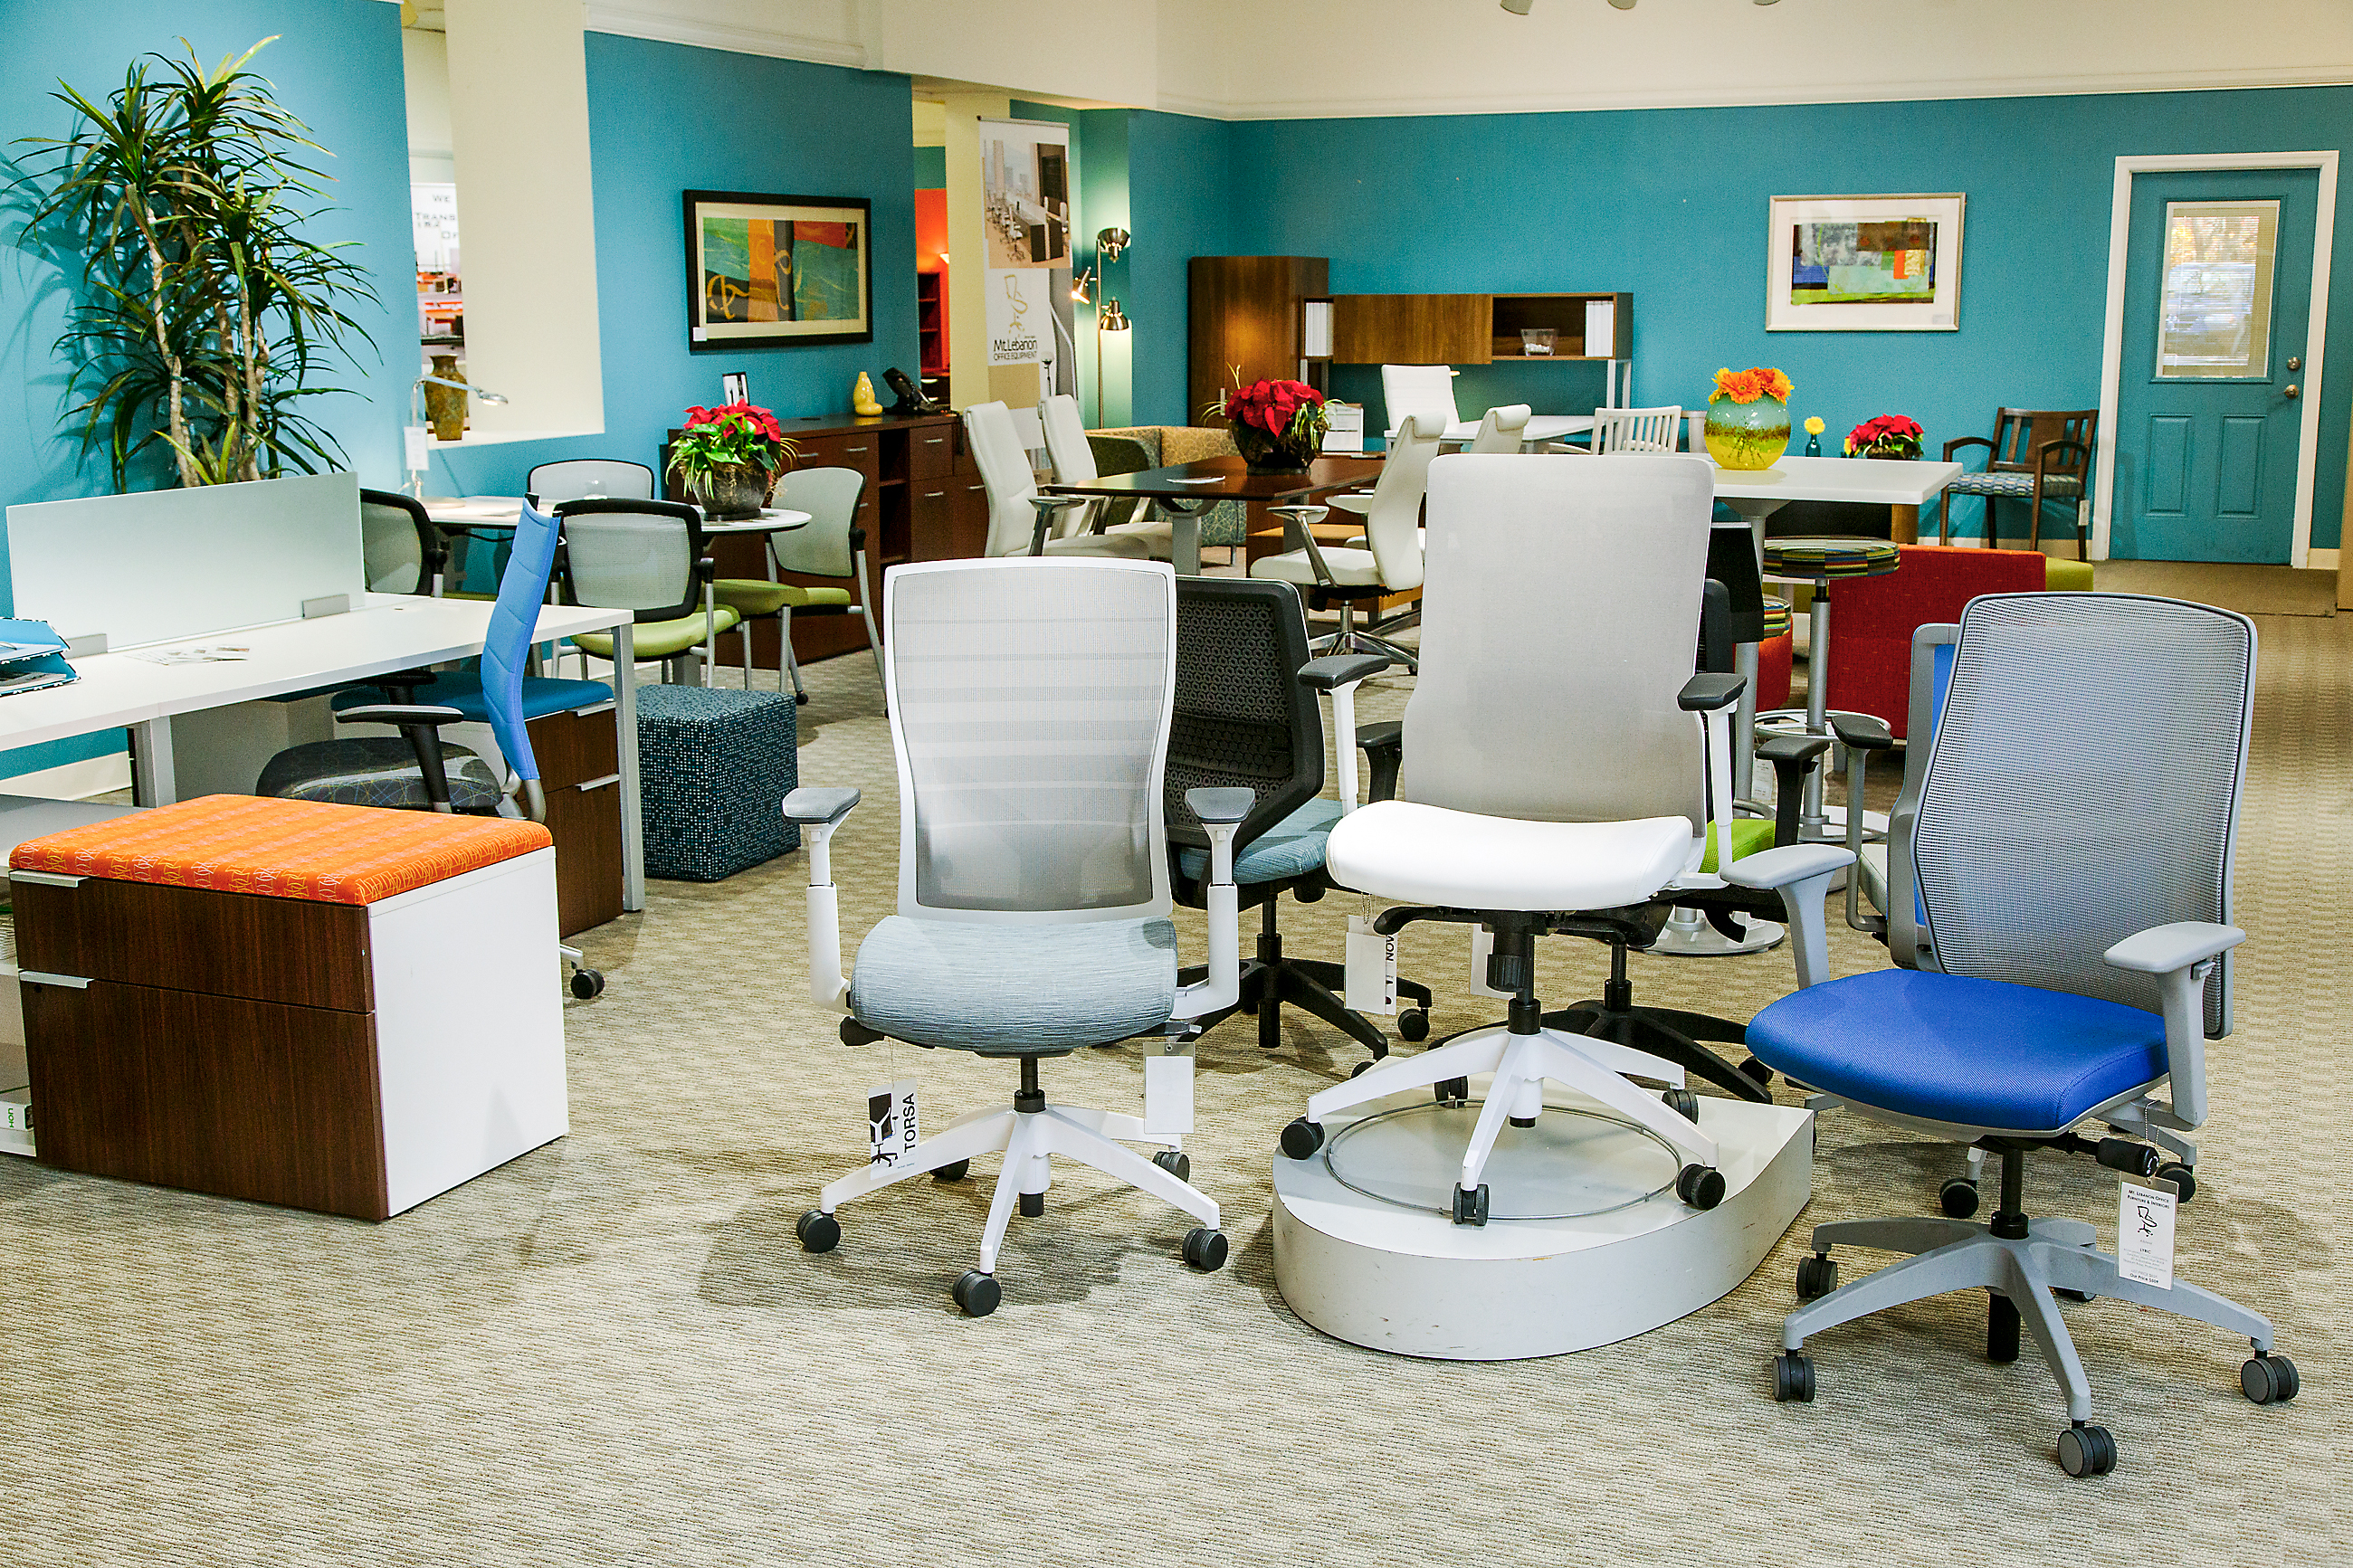 Office Furniture Interiors 28 Images Lounge Complete Office Furniture Interiors At Work